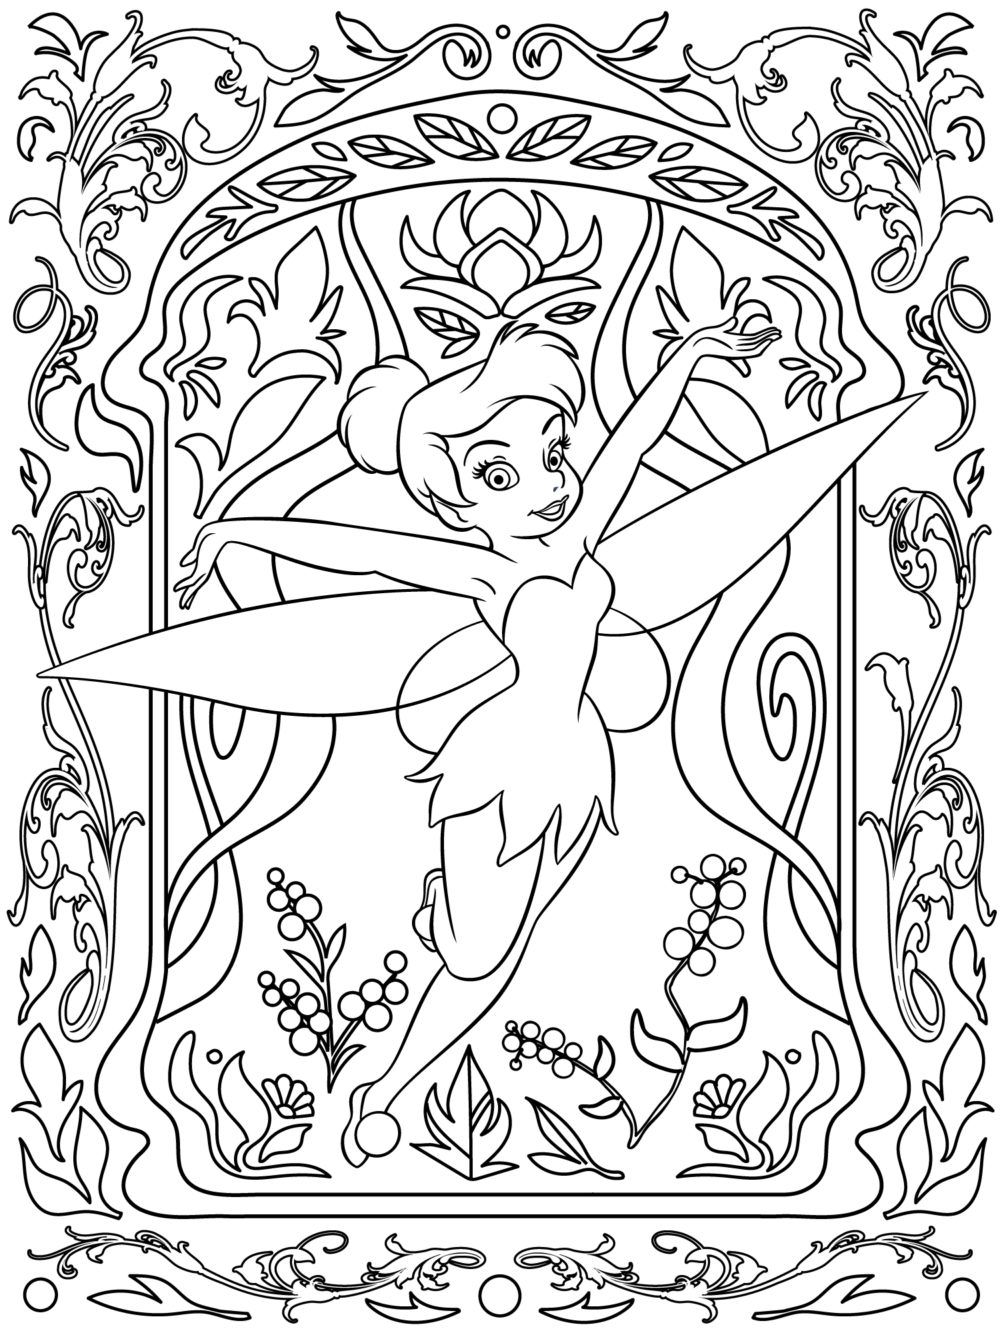 Adult colouring page #adultcolouring   Disney coloring ...   free coloring pages for adults disney